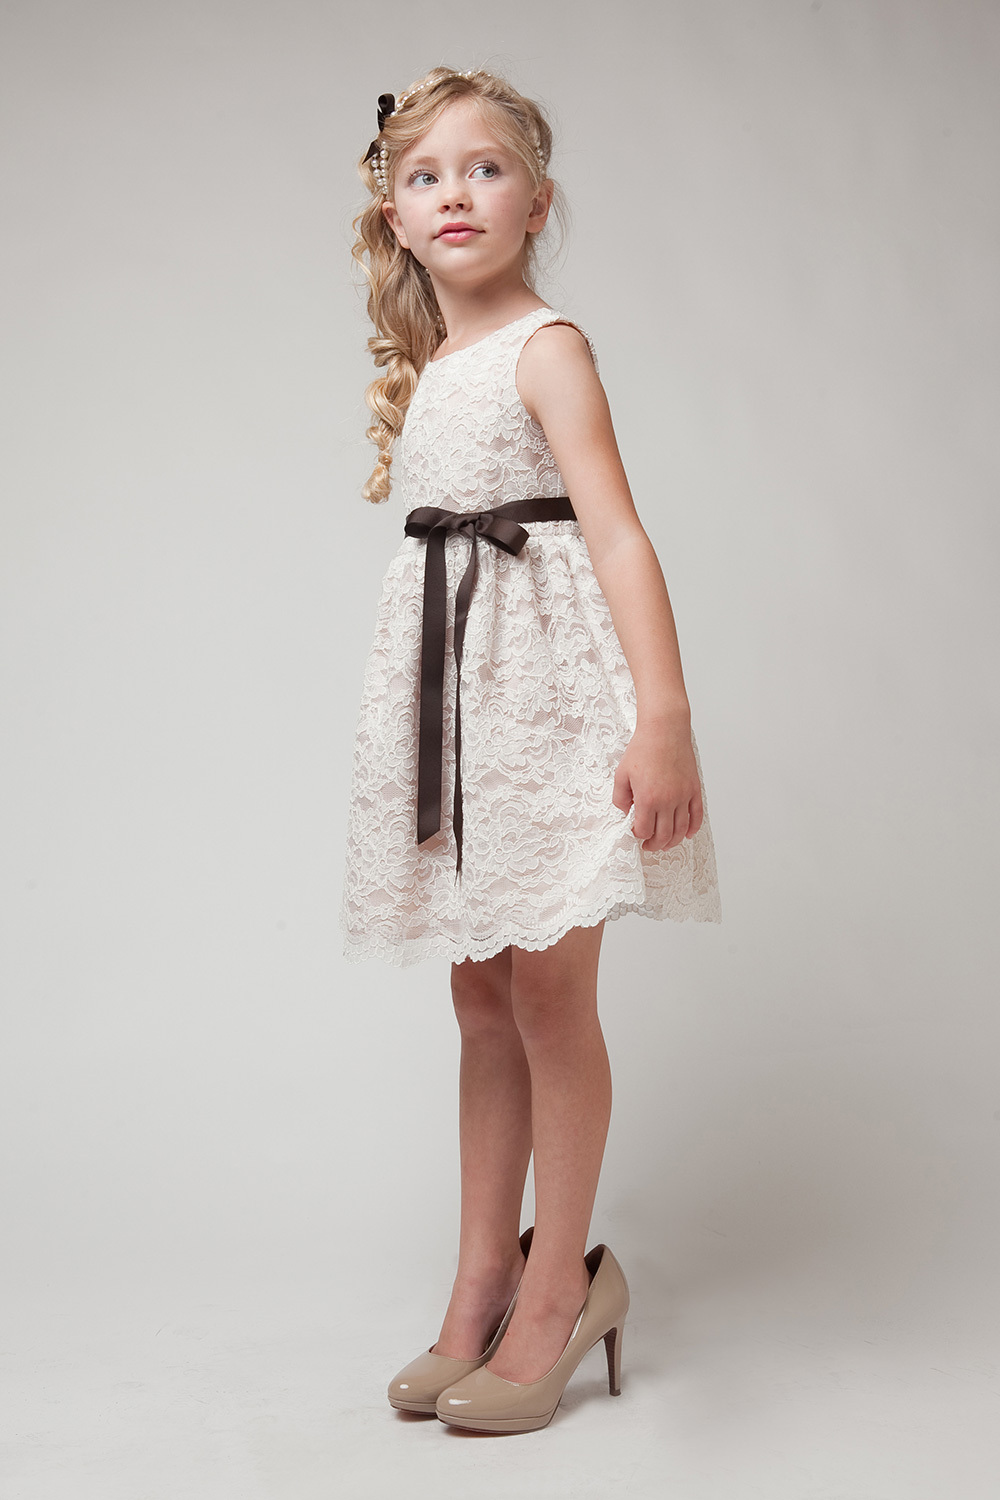 Browns. Toggle Filters Flower Girl Dress Style Choice of White or Ivory Dress with Chocolate Brown Sash and Petals Girls Dress Style BROWN Taffeta and Lace CREATE YOUR OWN DRESS. $ $ Brown Dress with Choice of 26 Sash and 23 Flower Options.